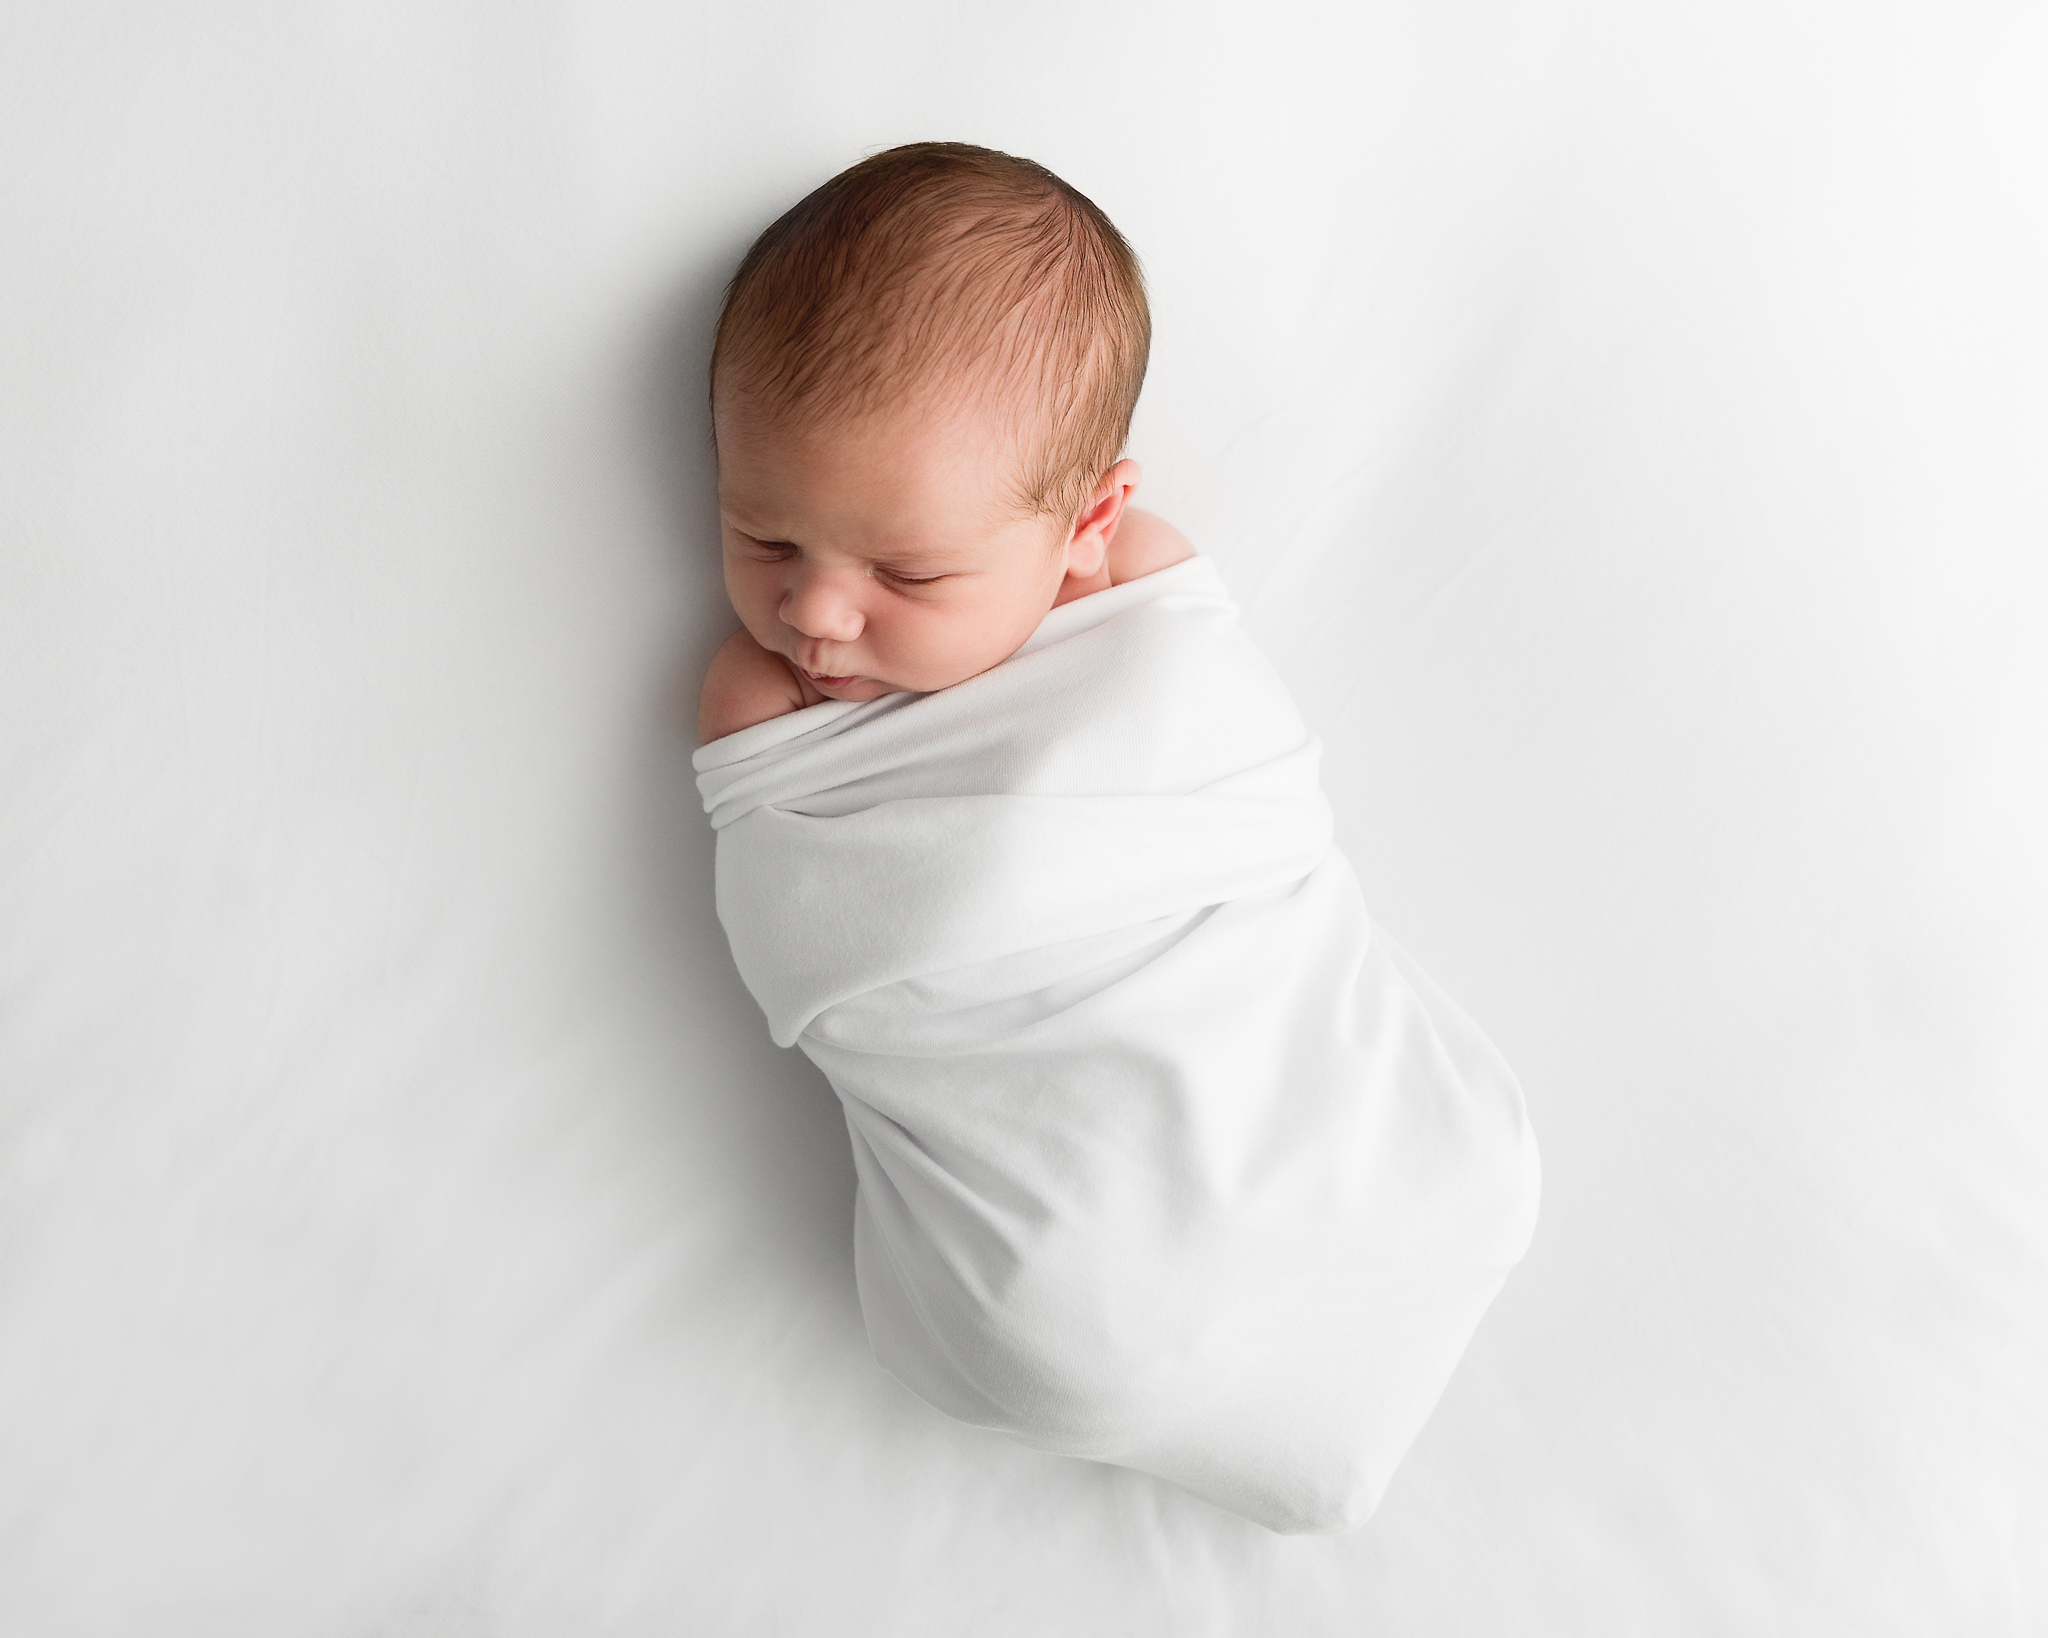 aberdeen newborn photographer banchory photographer-2.jpg